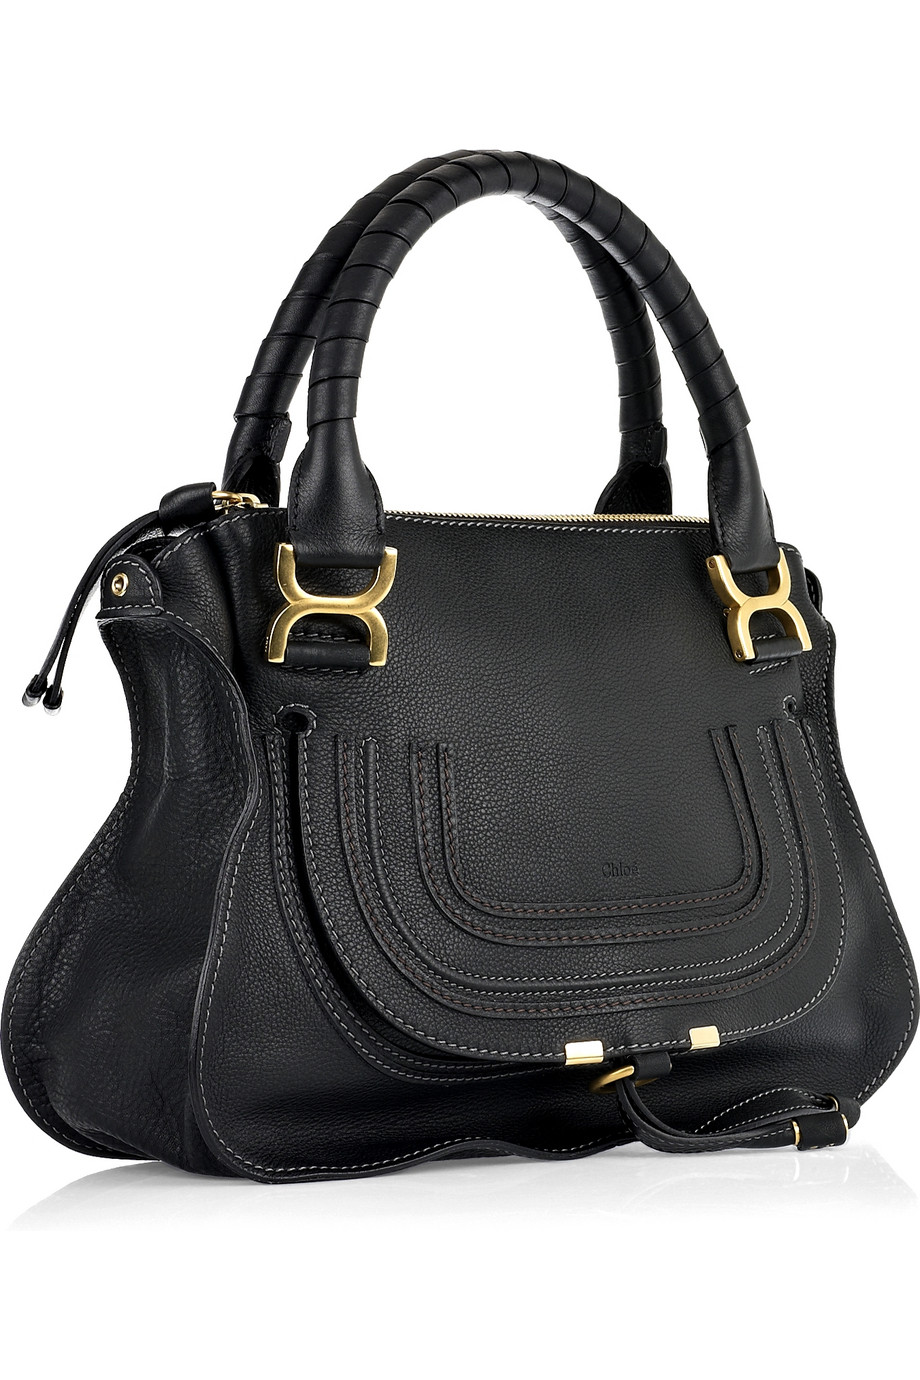 chlo marcie medium satchel bag in black lyst. Black Bedroom Furniture Sets. Home Design Ideas